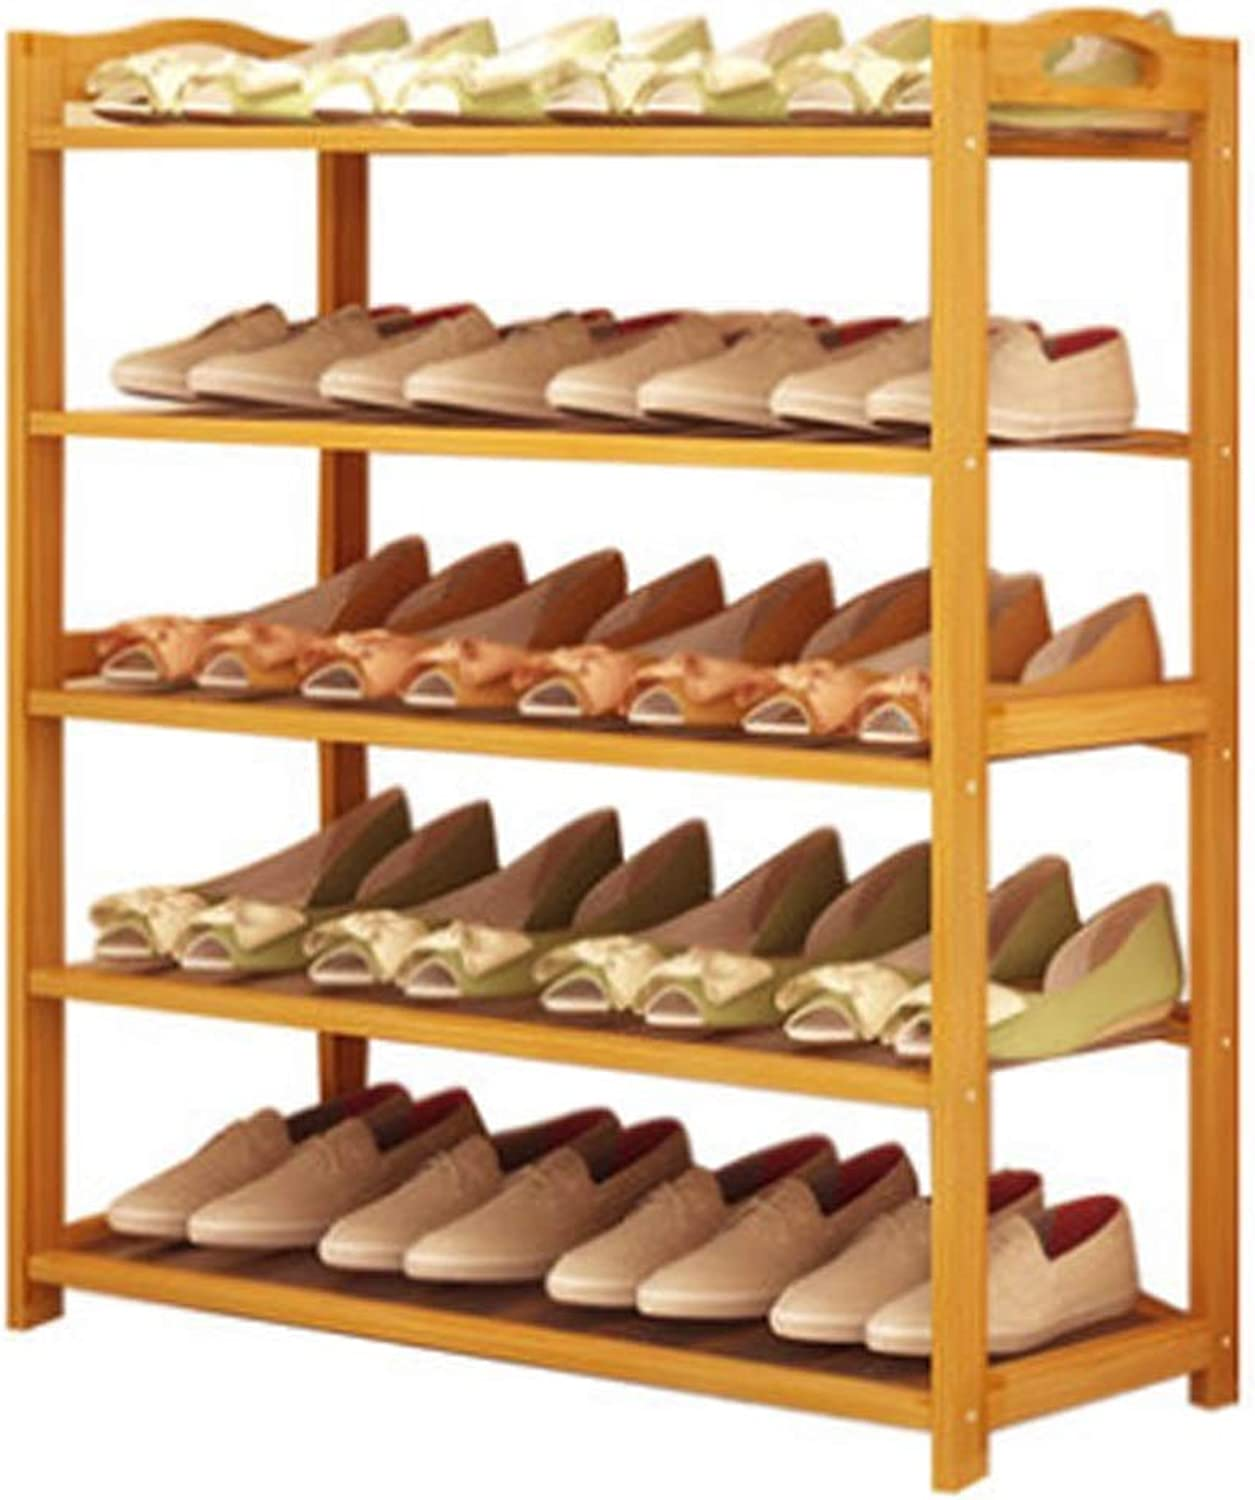 shoes Rack, shoes Cabinet, Wooden color Bamboo Shelf, Home Entrance Cabinet, Assembly Dormitory Storage Rack, Multi-Functional Optional (Size   50 Models)